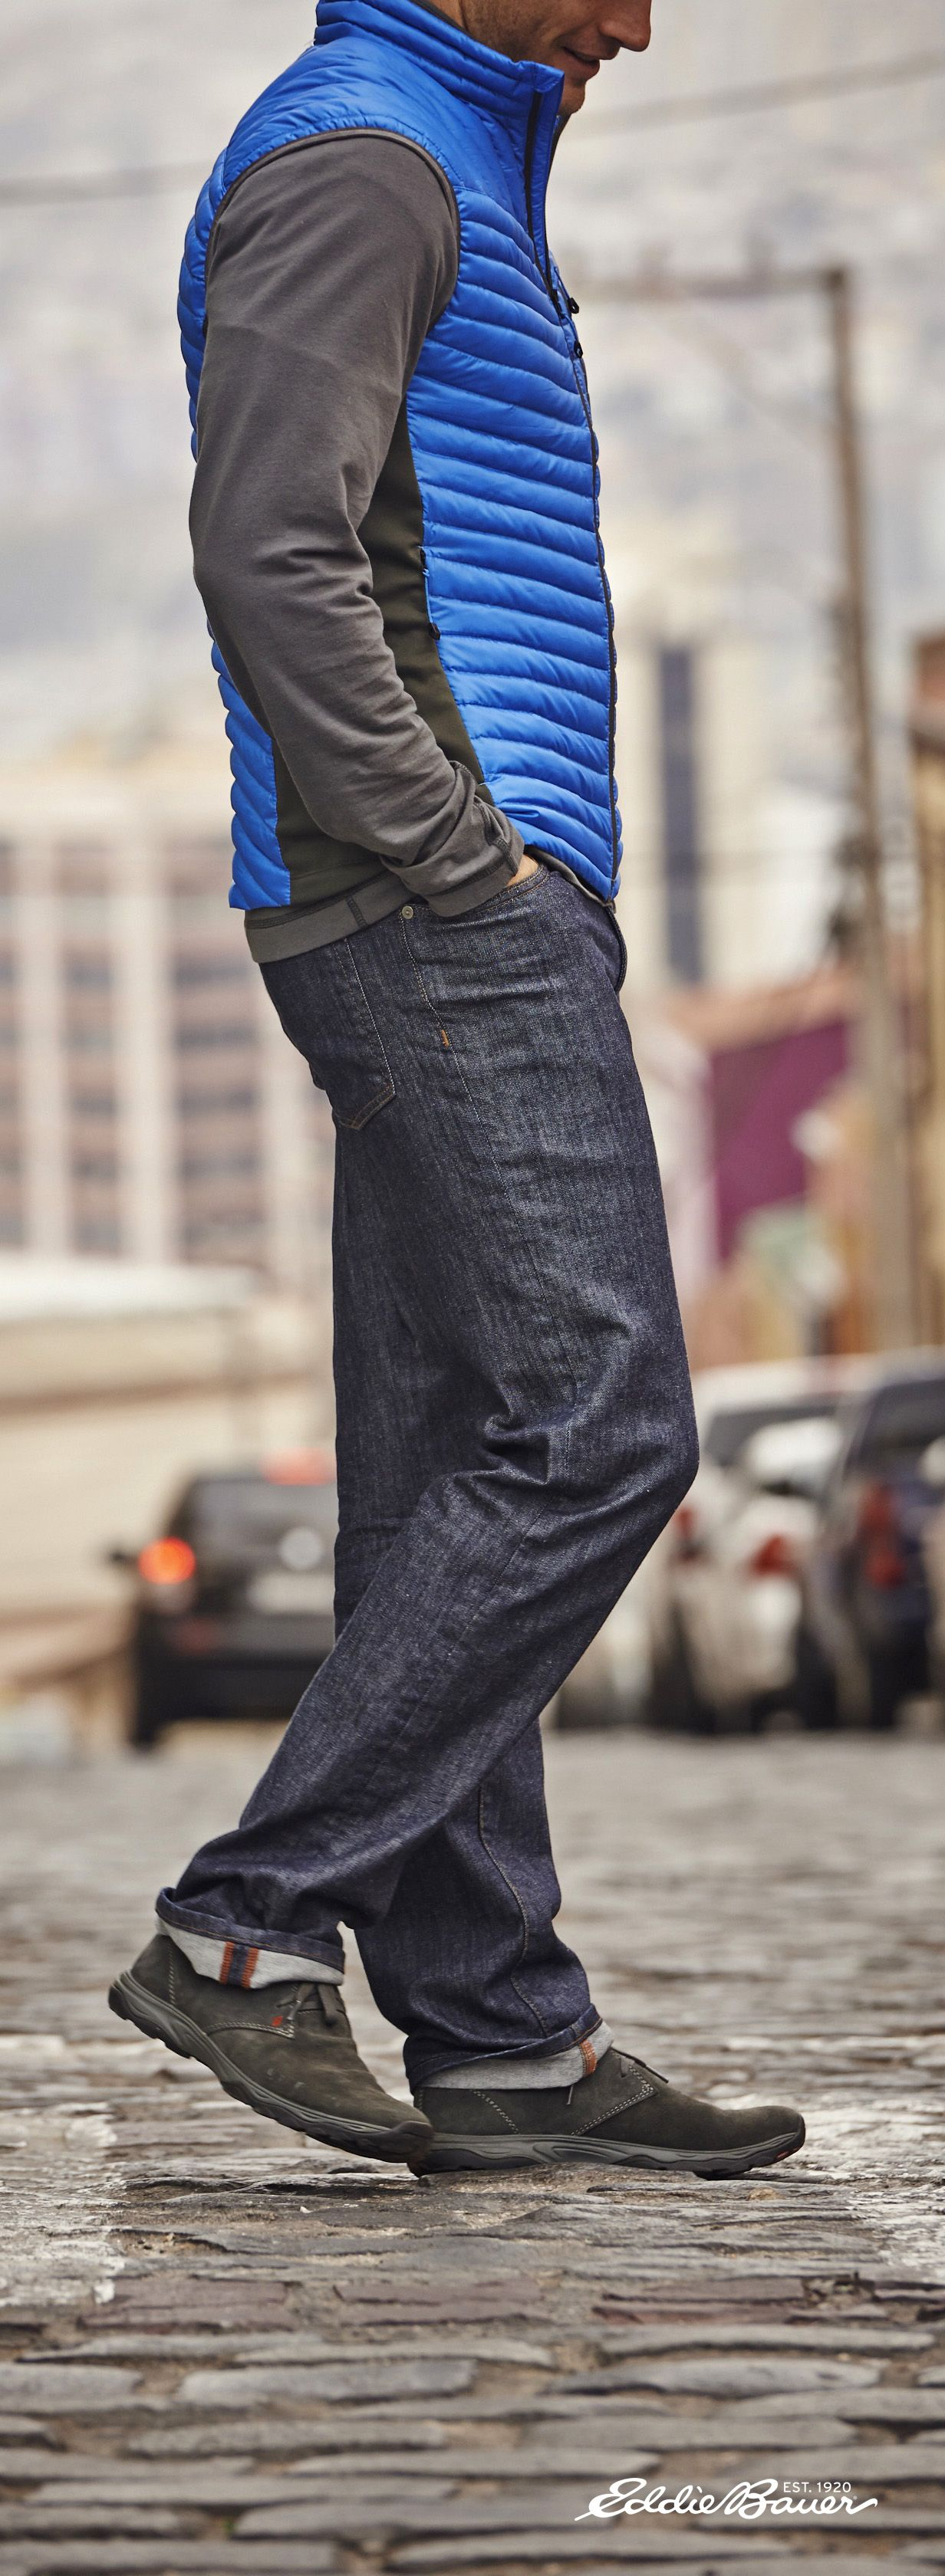 american jean men mens function bogo menswear s form flex comforter ve worn of some most ever skinny now and i core pin outfitters comfortable eagle jeans the right